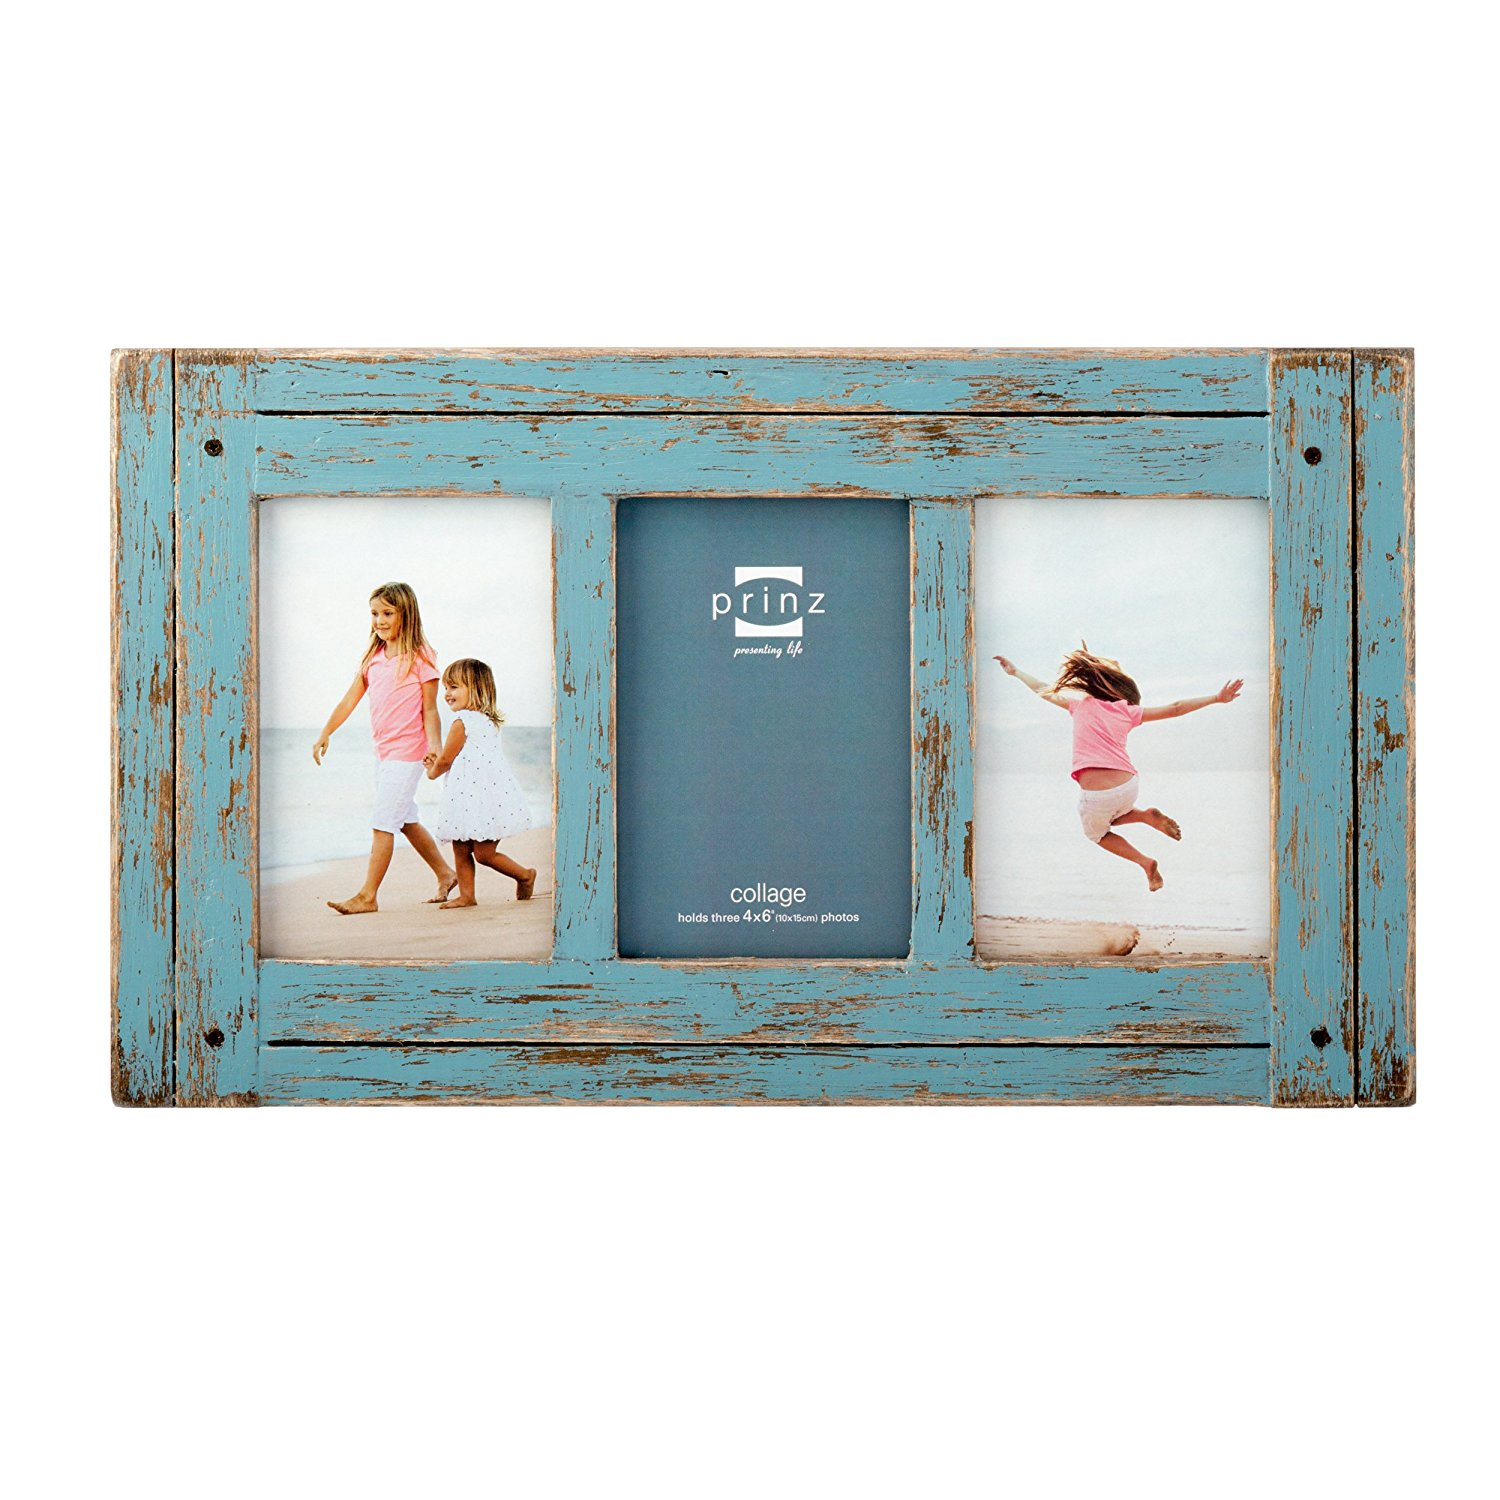 "Prinz 3 Opening Homestead Antique Wood Collage Frame, 4 x 6"", Blue"